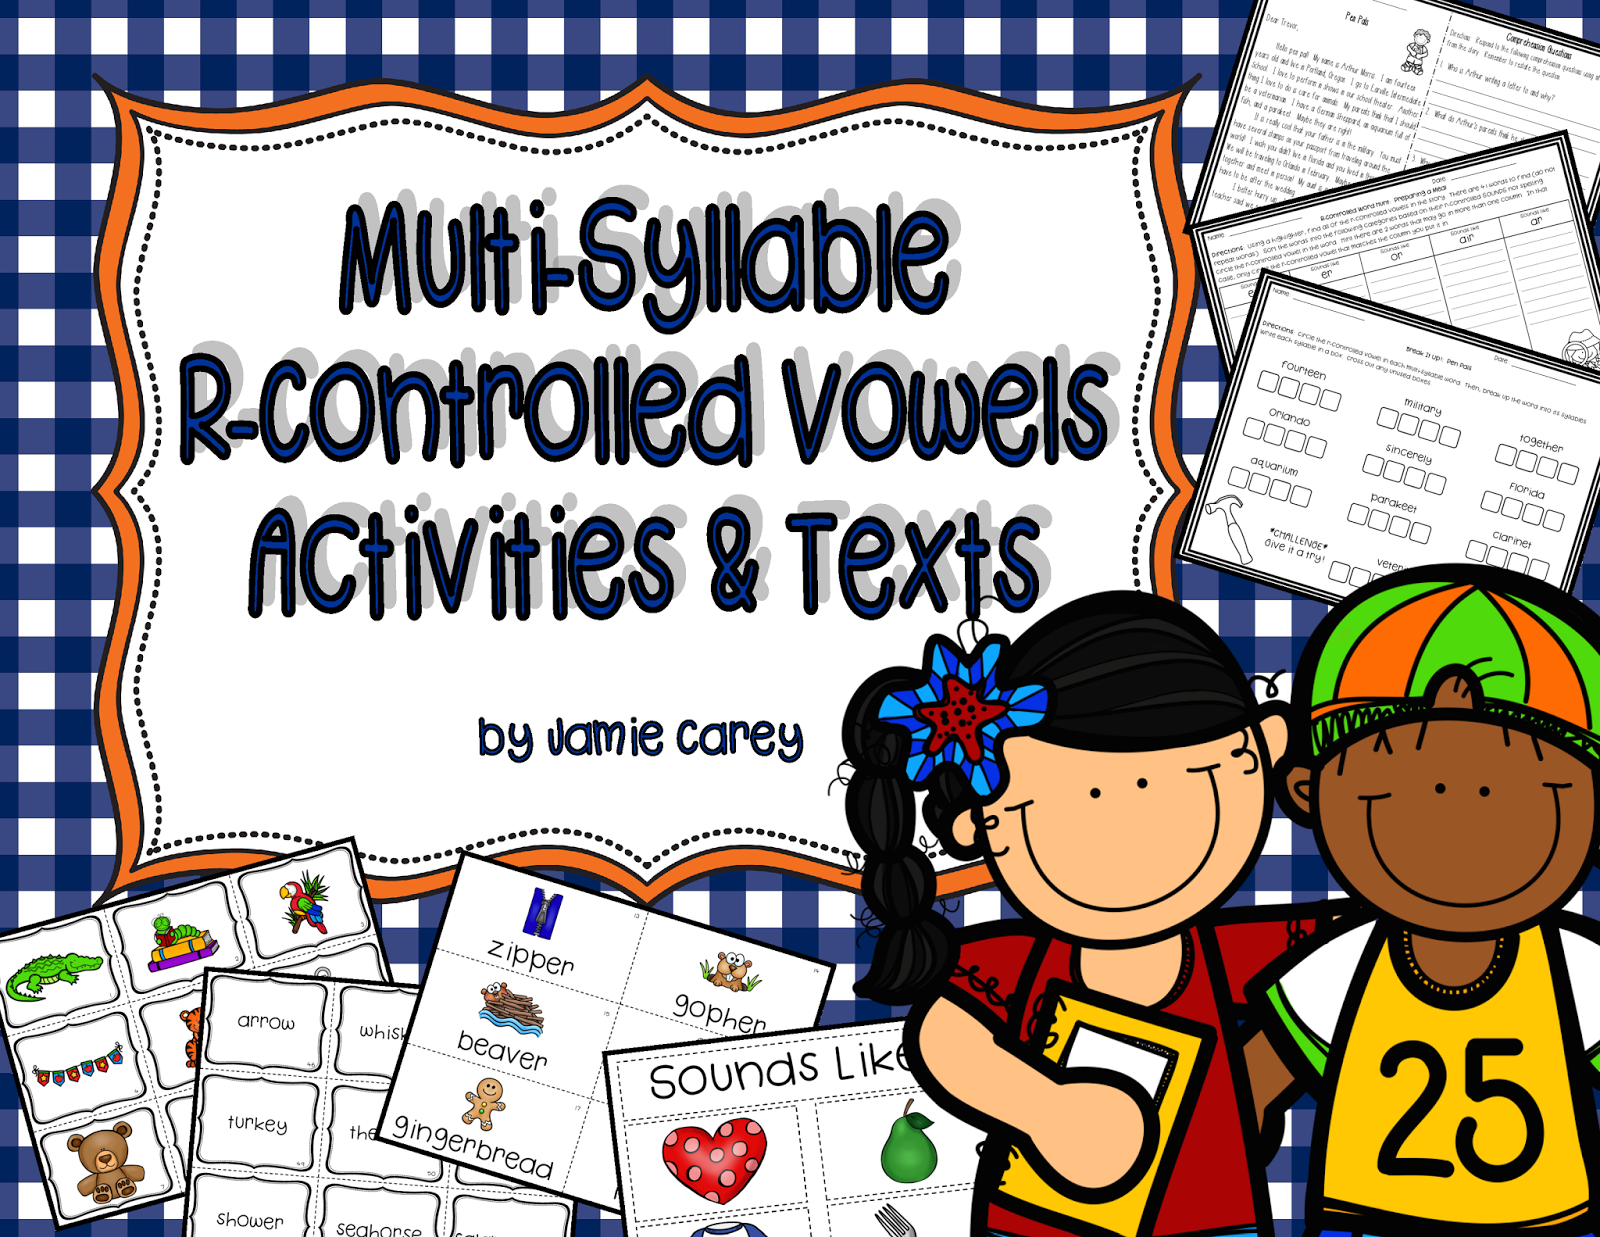 http://www.teacherspayteachers.com/Product/Multi-Syllable-R-Controlled-Vowels-Activities-Texts-1492462